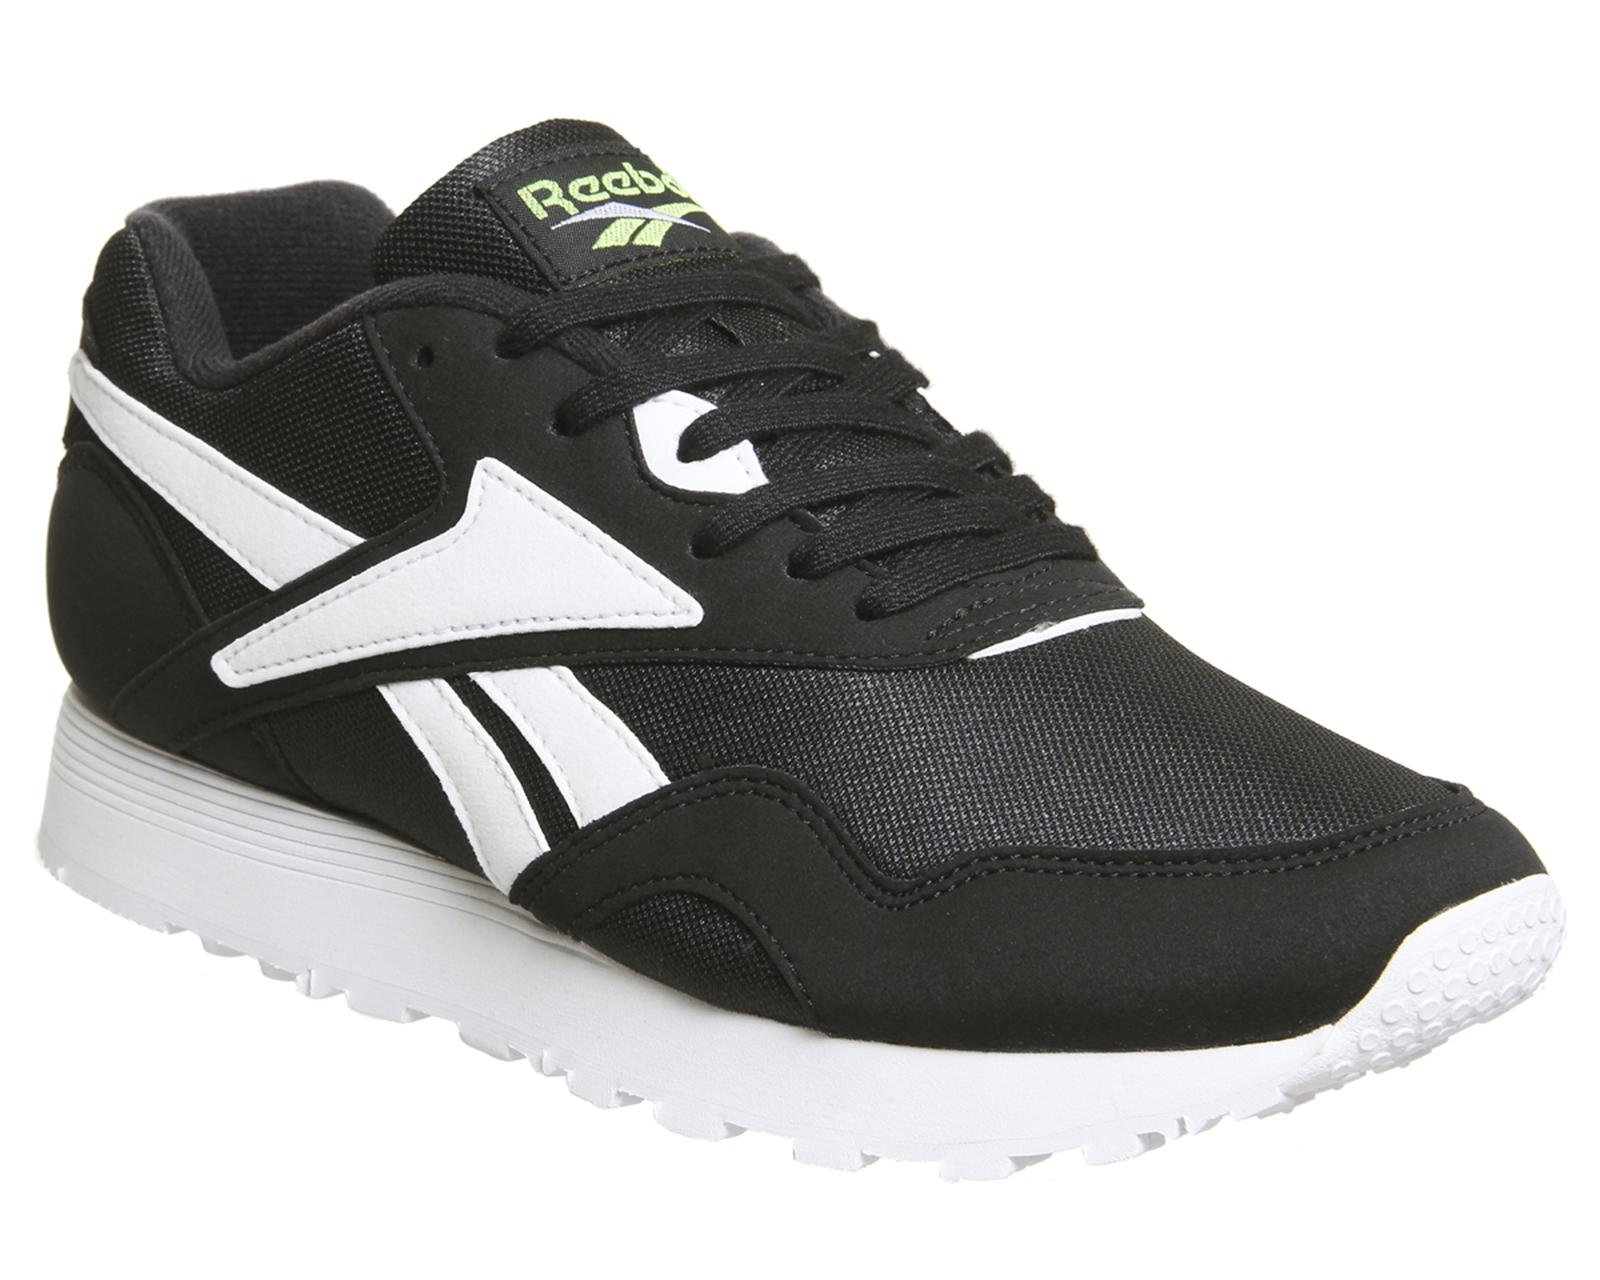 0f0ac8e0031f Reebok Rapide Trainers in Black for Men - Lyst